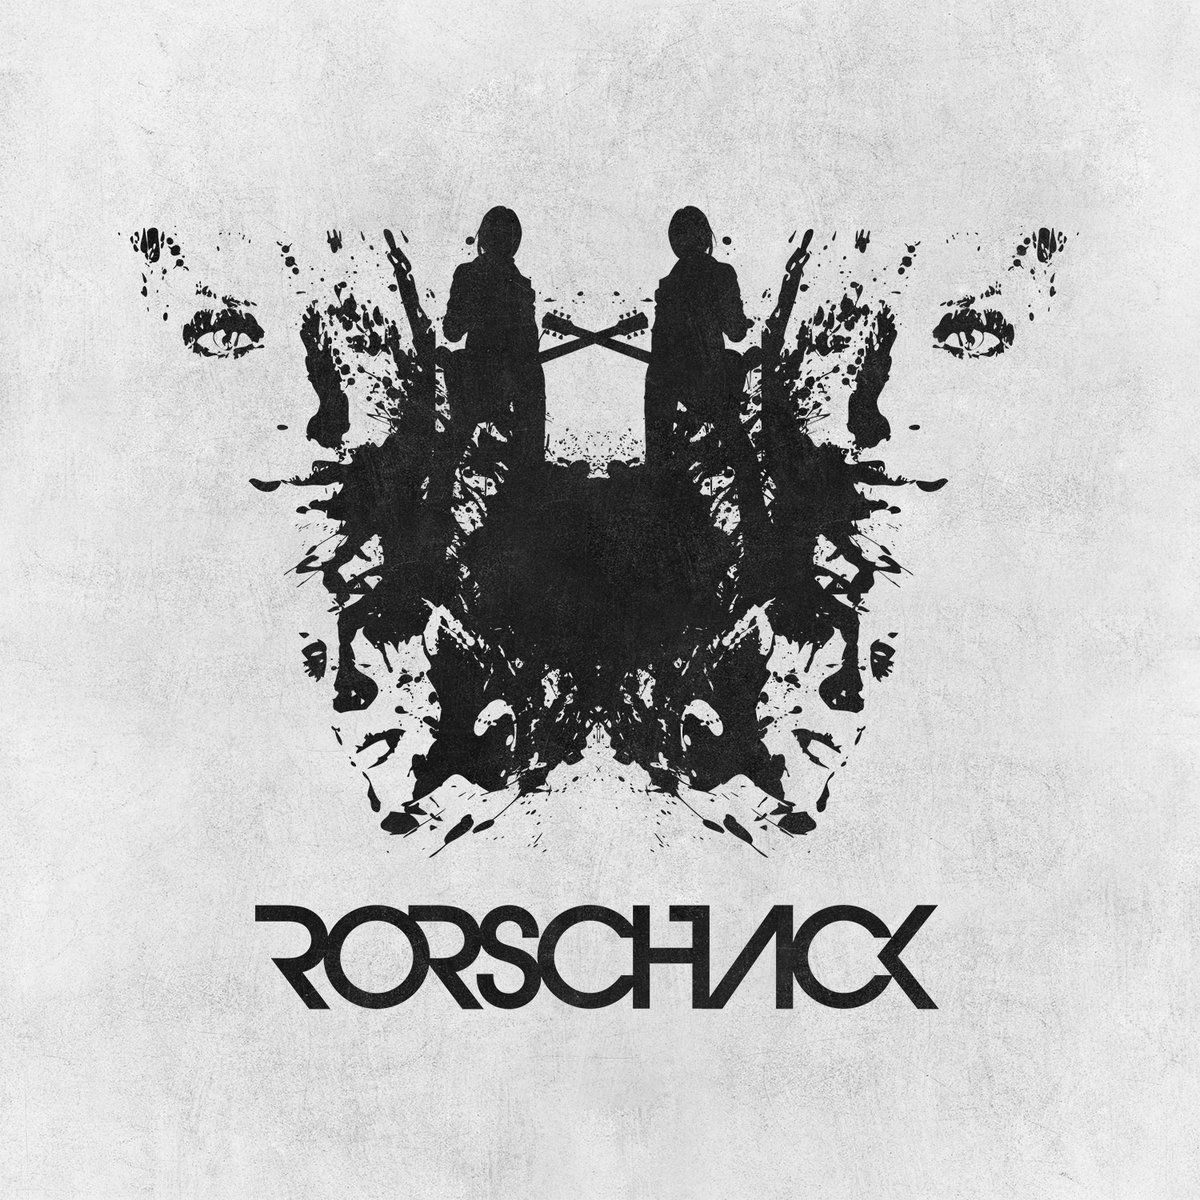 Rorschack - Work in Progress @ 'All of the Above' album (bass, electronic)